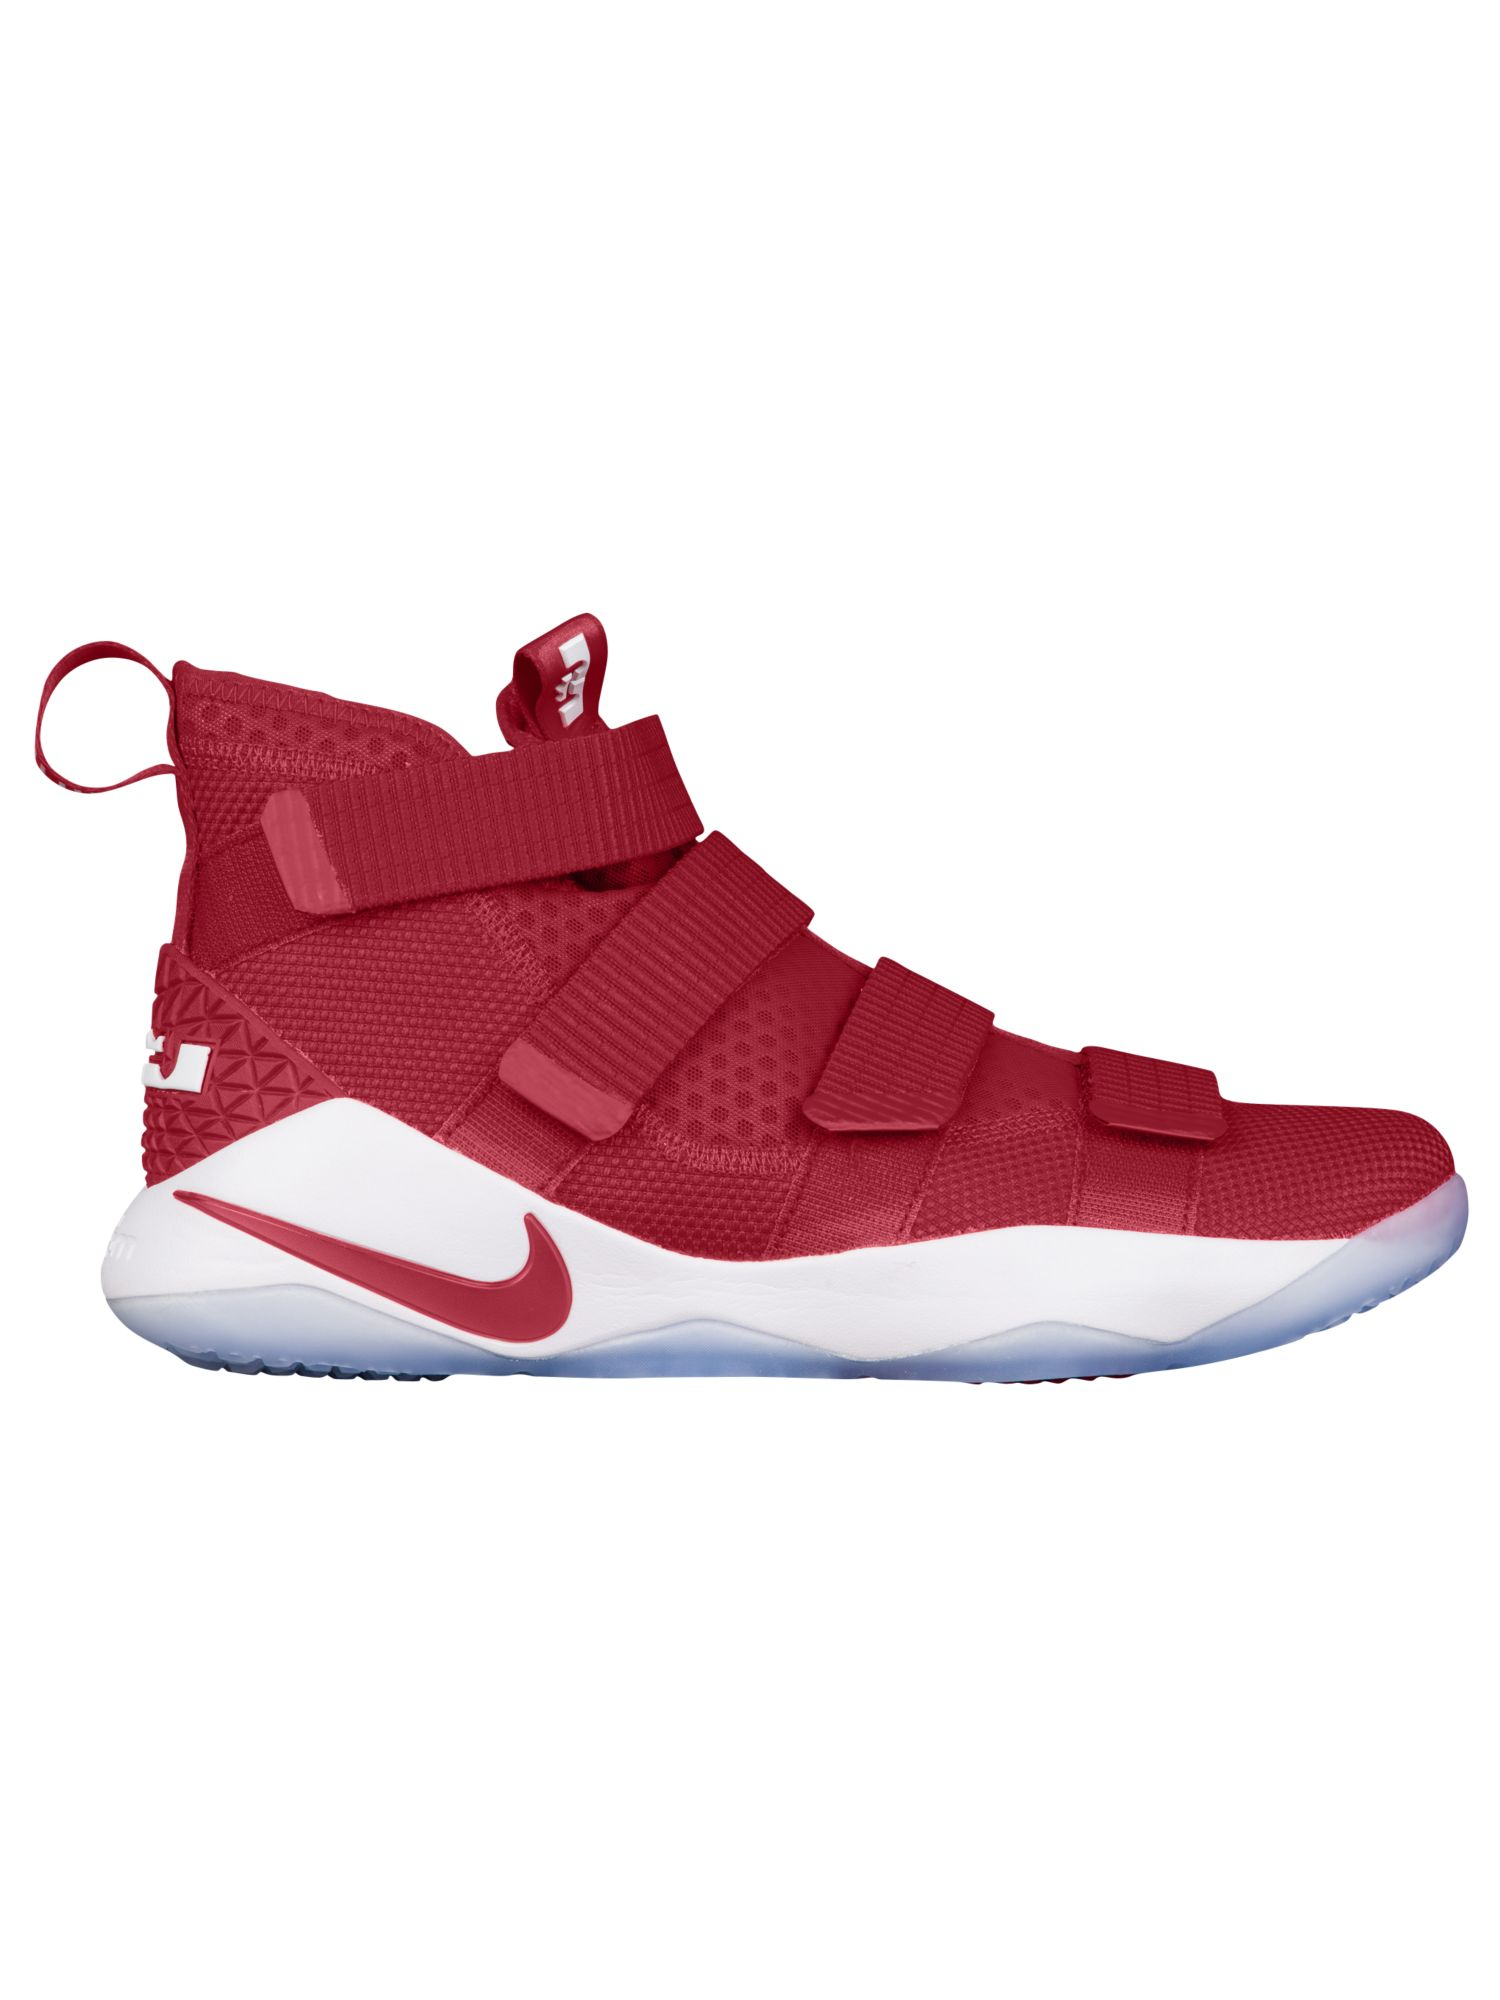 finest selection bfebf 89128 ... wholesale nike lebron soldier 11 mens basketball shoes james lebron gym  red white 061eb fa935